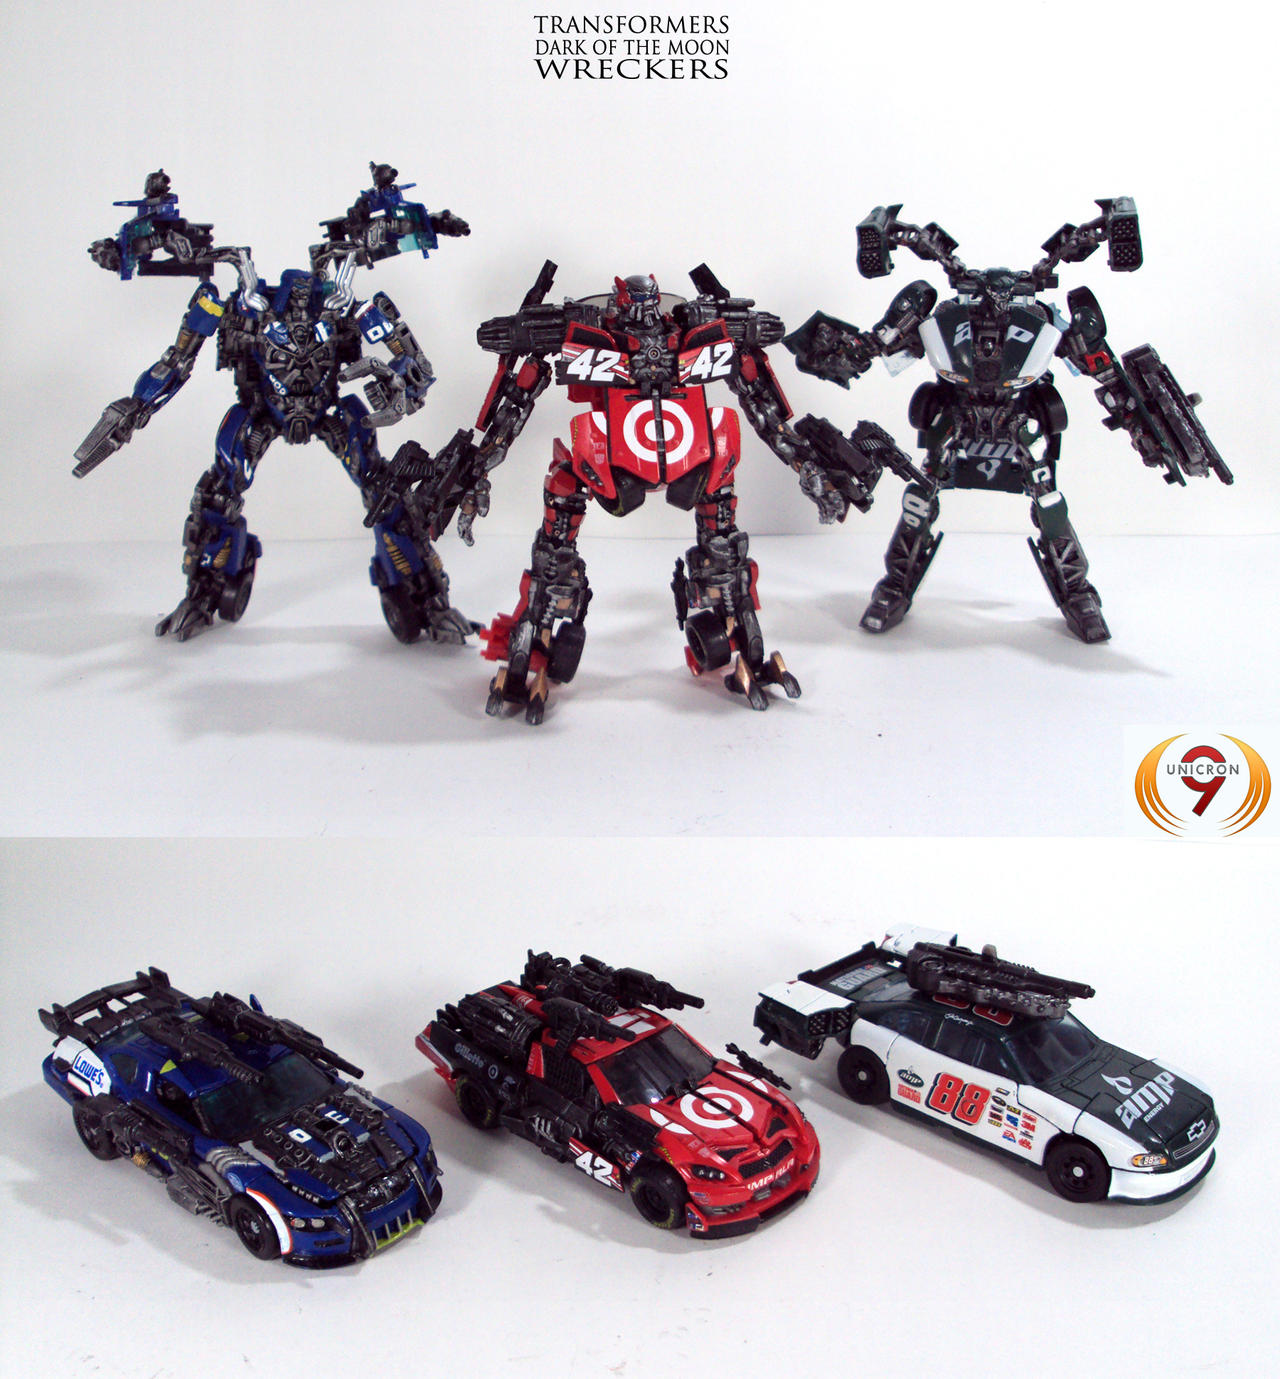 Transformers DOTM Wreckers By Unicron9 On DeviantArt